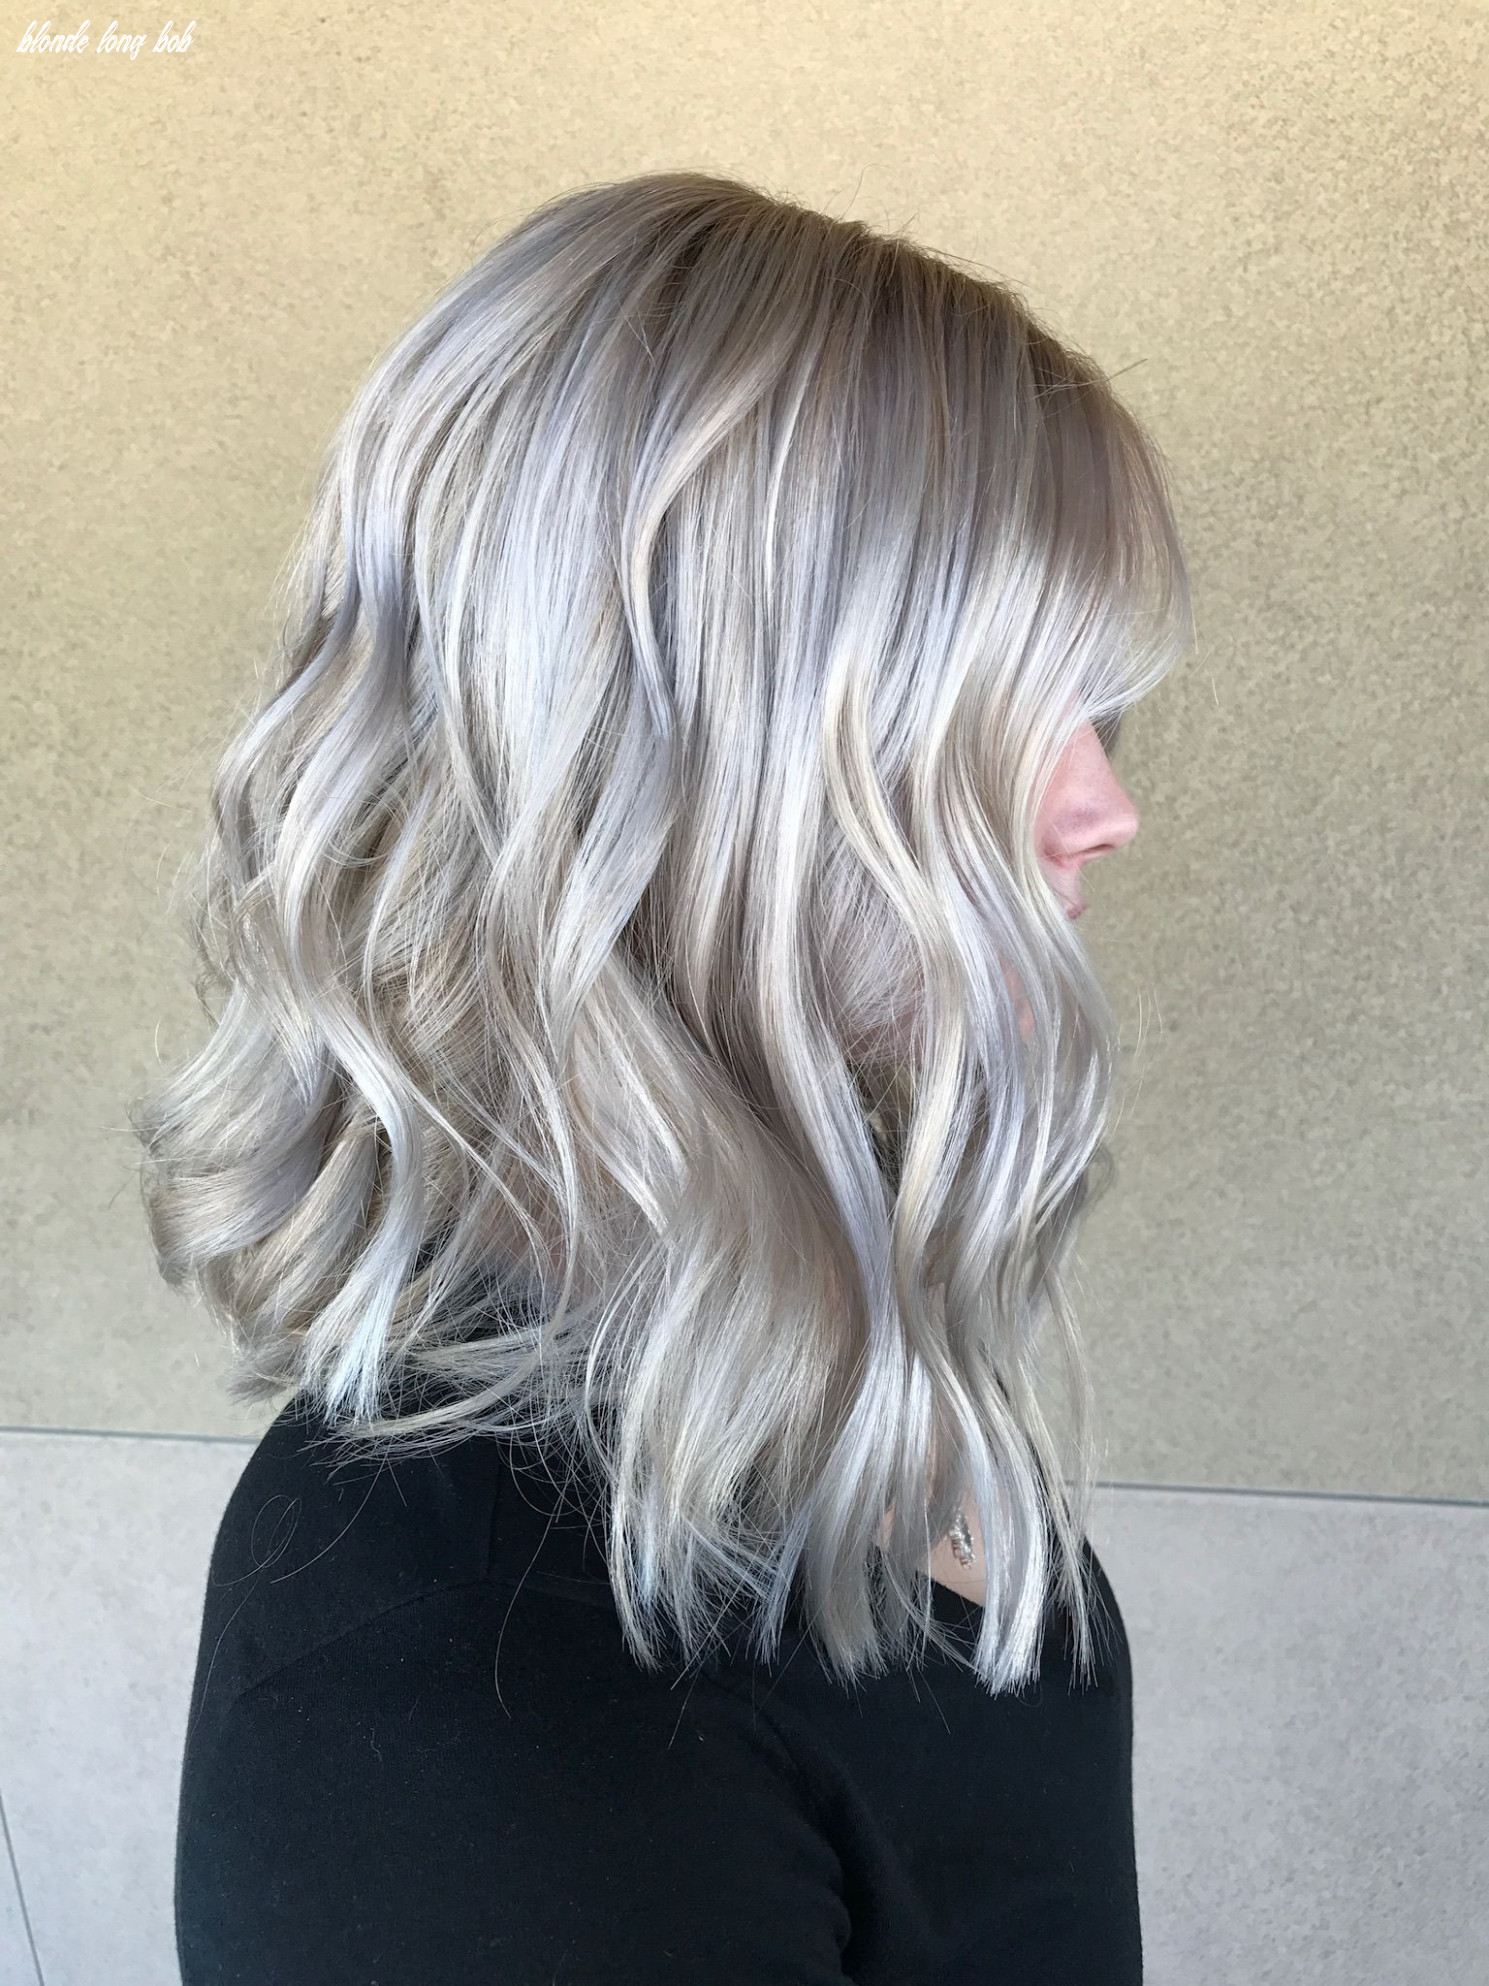 Icy platinum blonde long bob baliage | platinblond, blond, platin blonde long bob